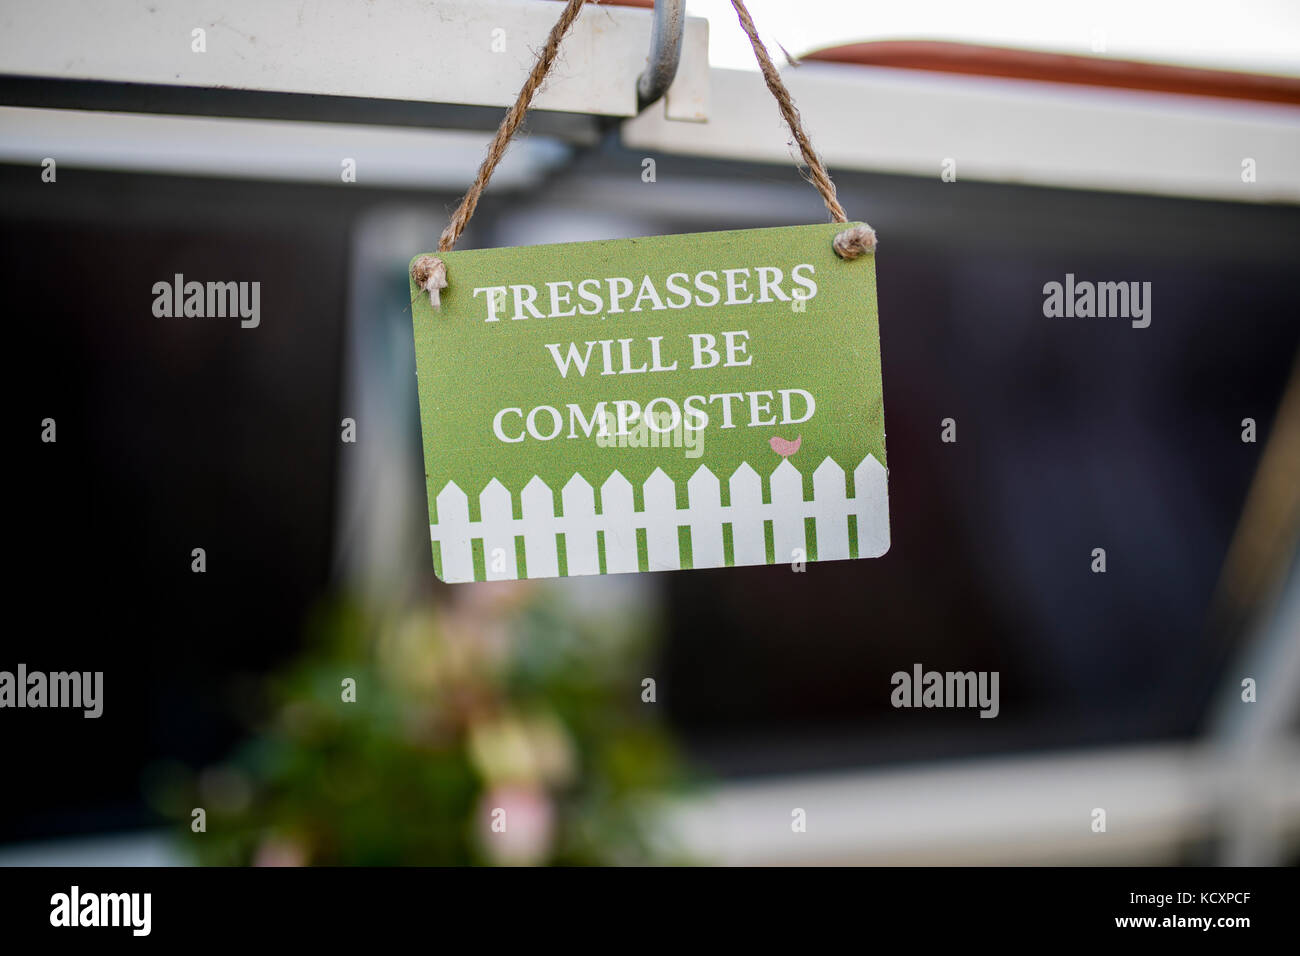 Trespassers will be composted quirky and humourous gardening sign hanging in an English green house or potting shed - Stock Image